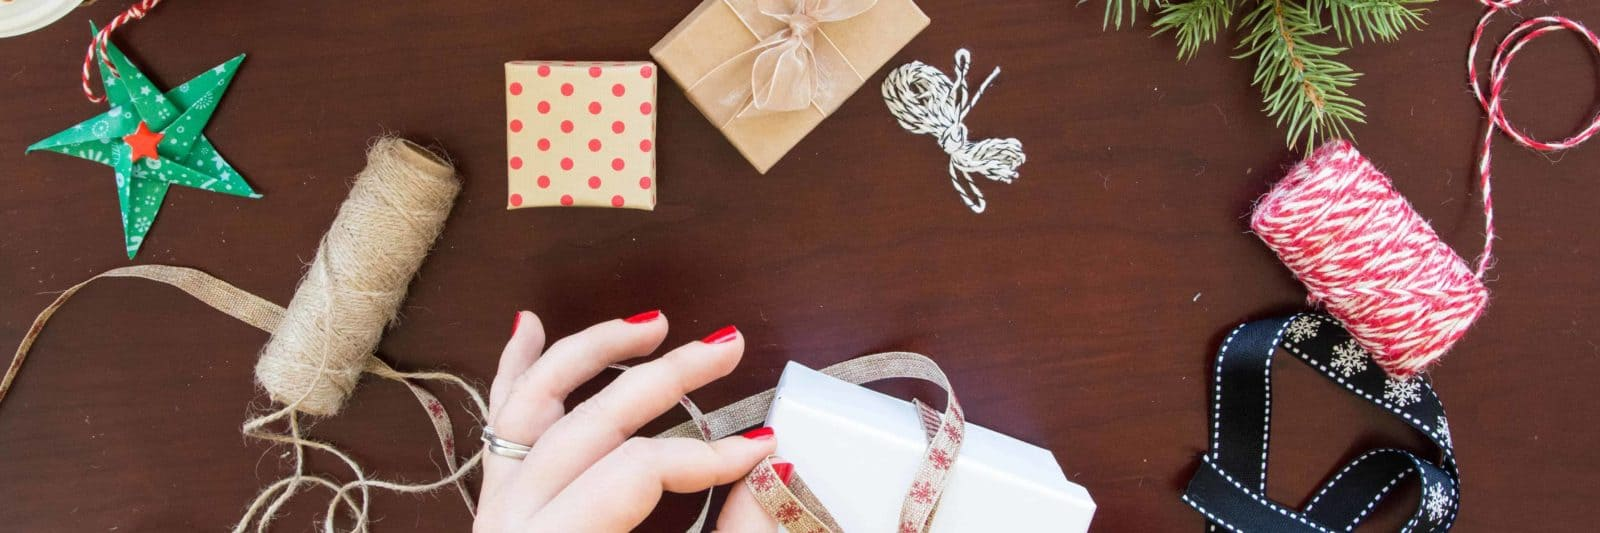 travel-gifts-for-women